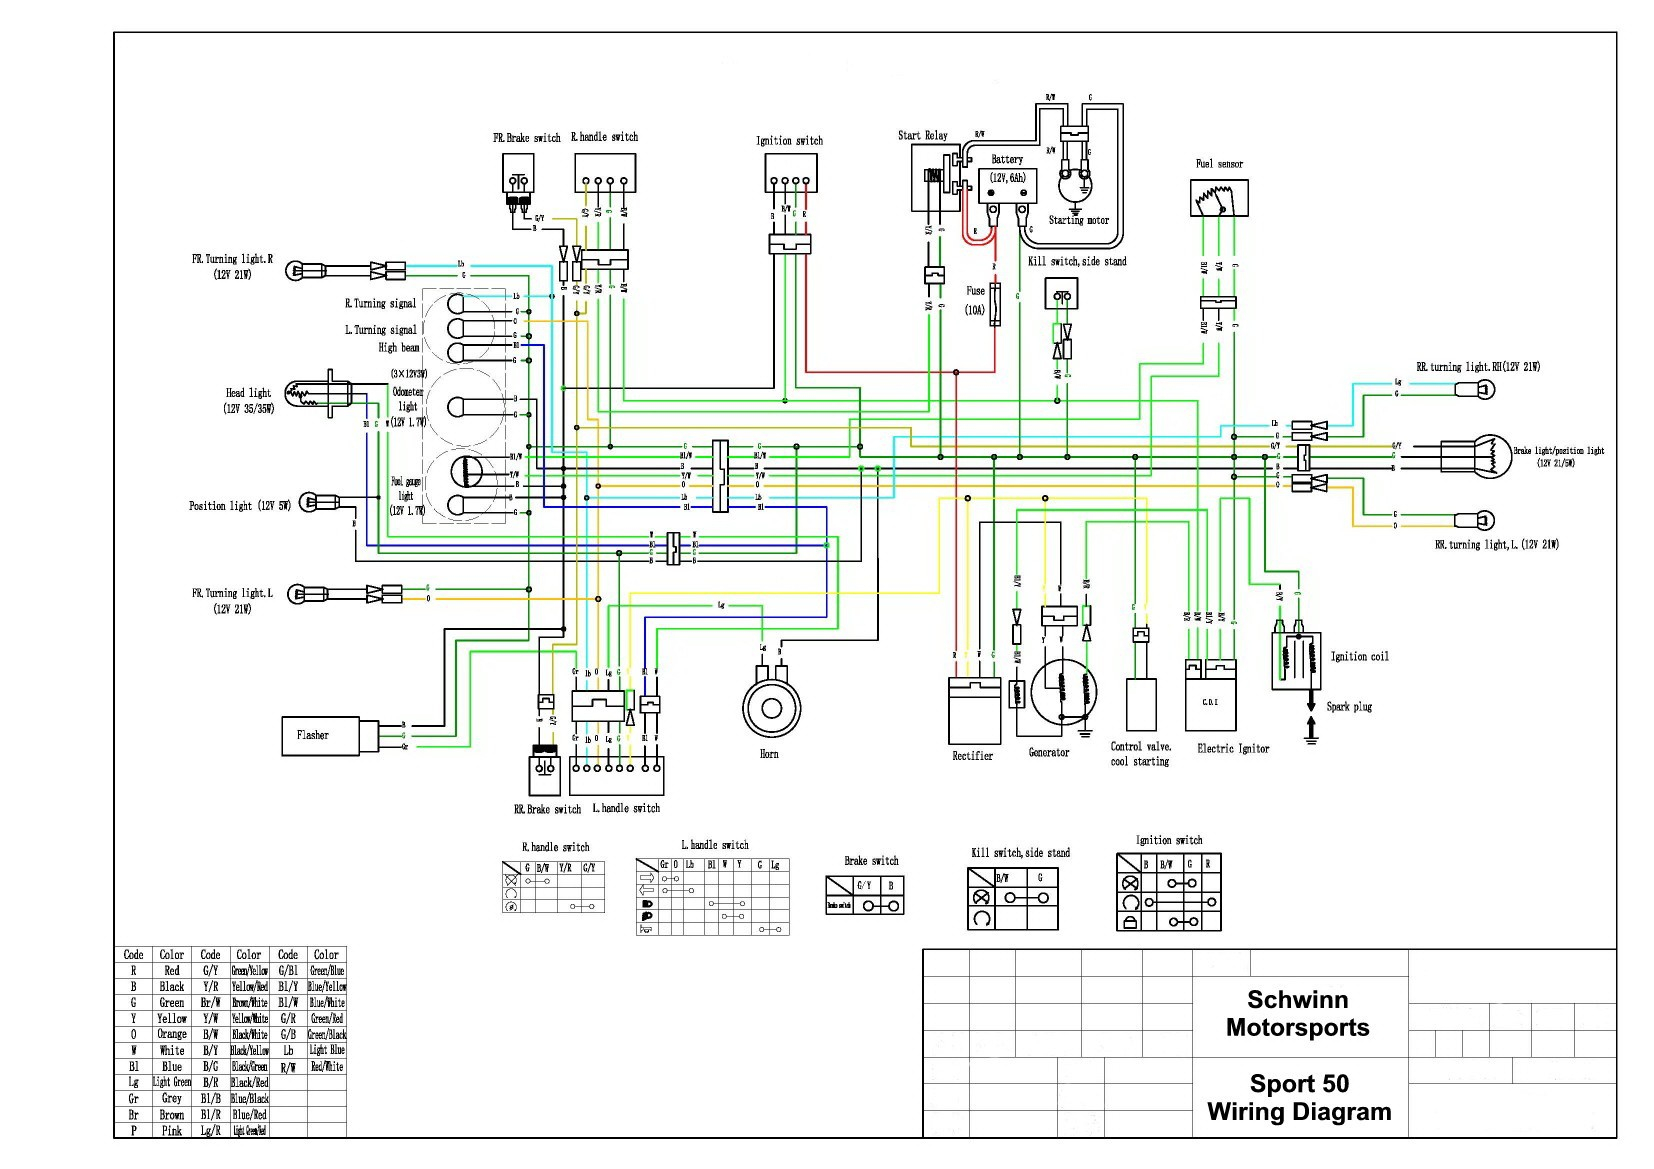 hight resolution of jackpot wiring diagram wiring diagram blog 2007 victory vegas wiring diagram victory vegas wiring diagram